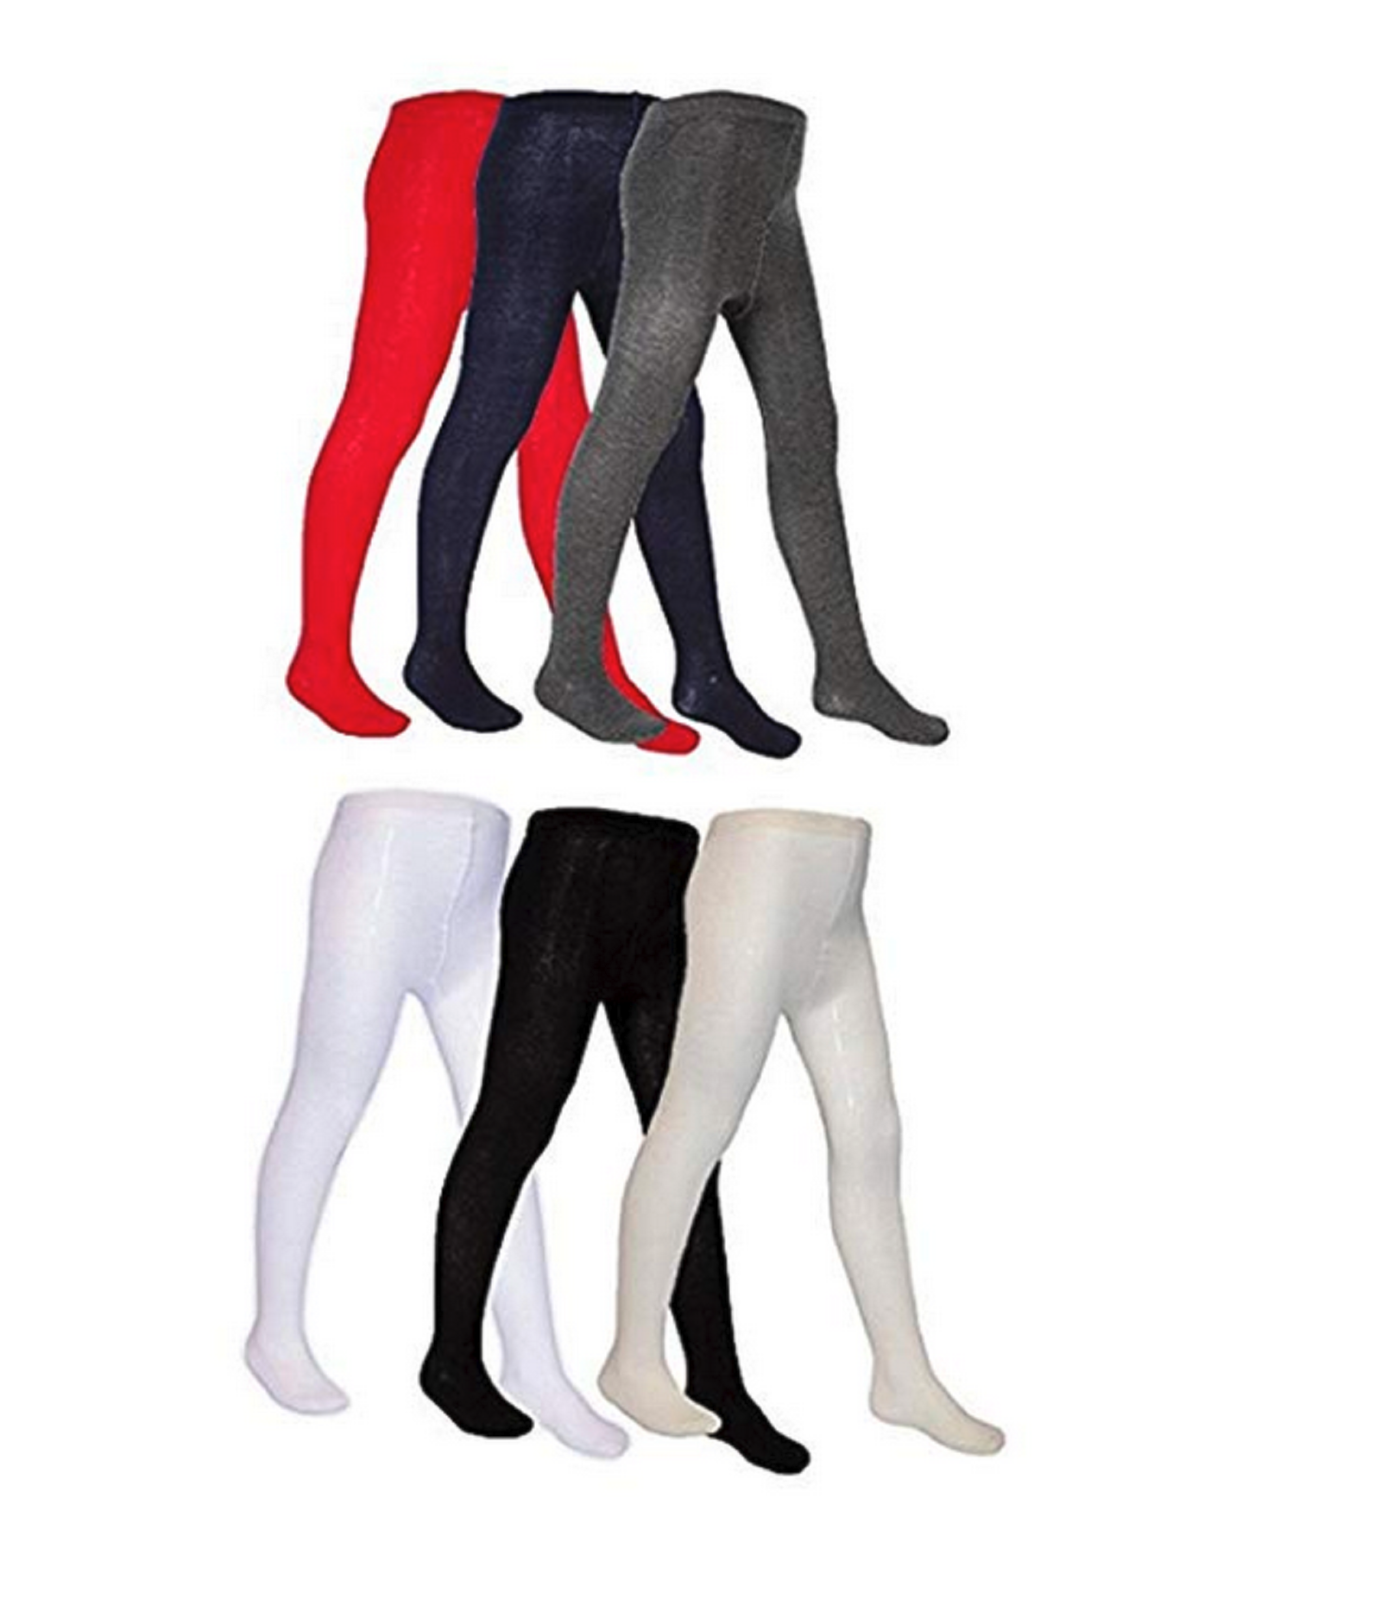 Everyday Children's Cotton Rich Tights Nifty Back To School Thick Newborn - Teen 2